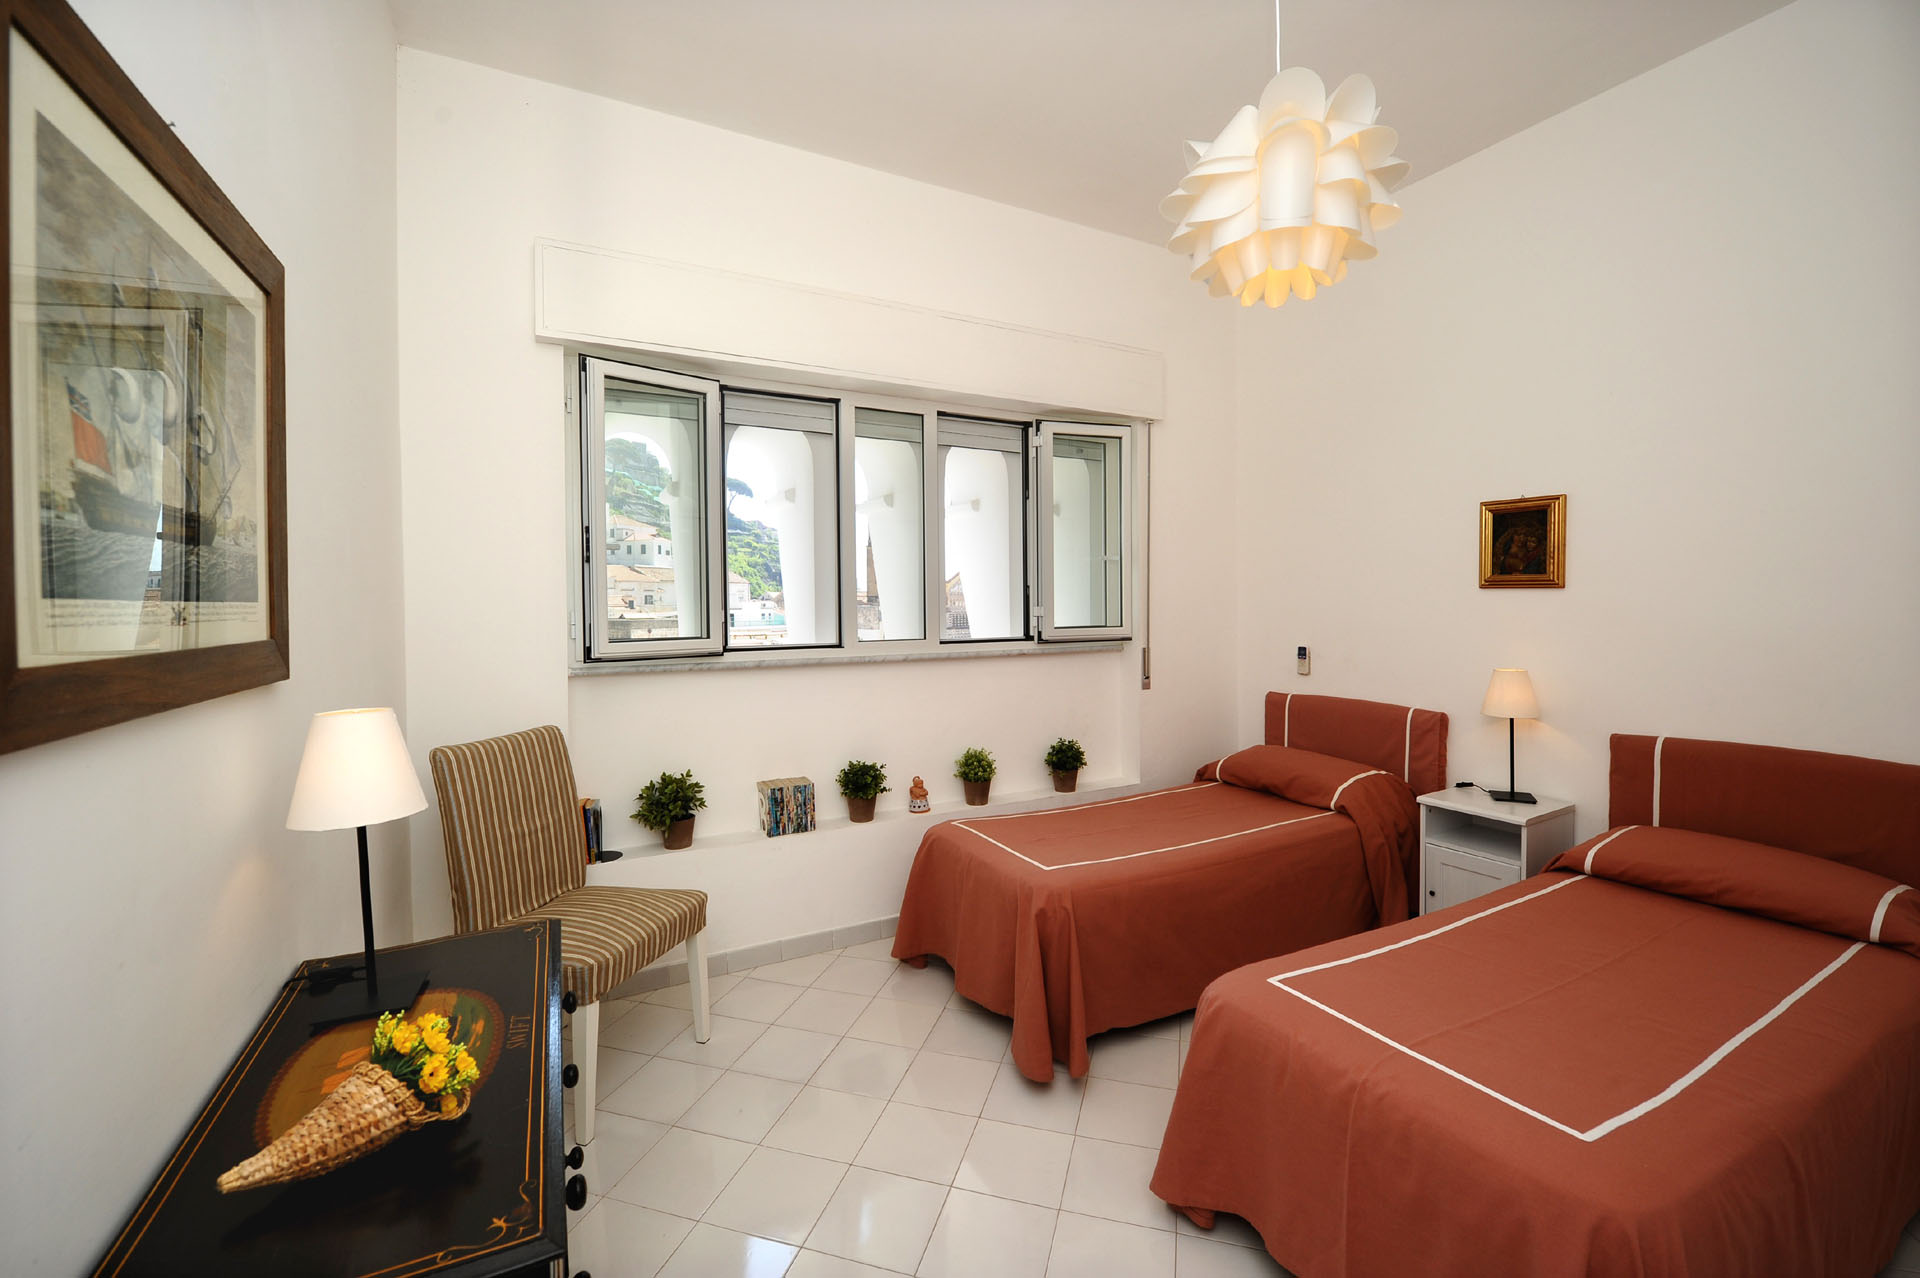 Apartments amalfi apartments costiera amalfitana o for Apartments amalfi